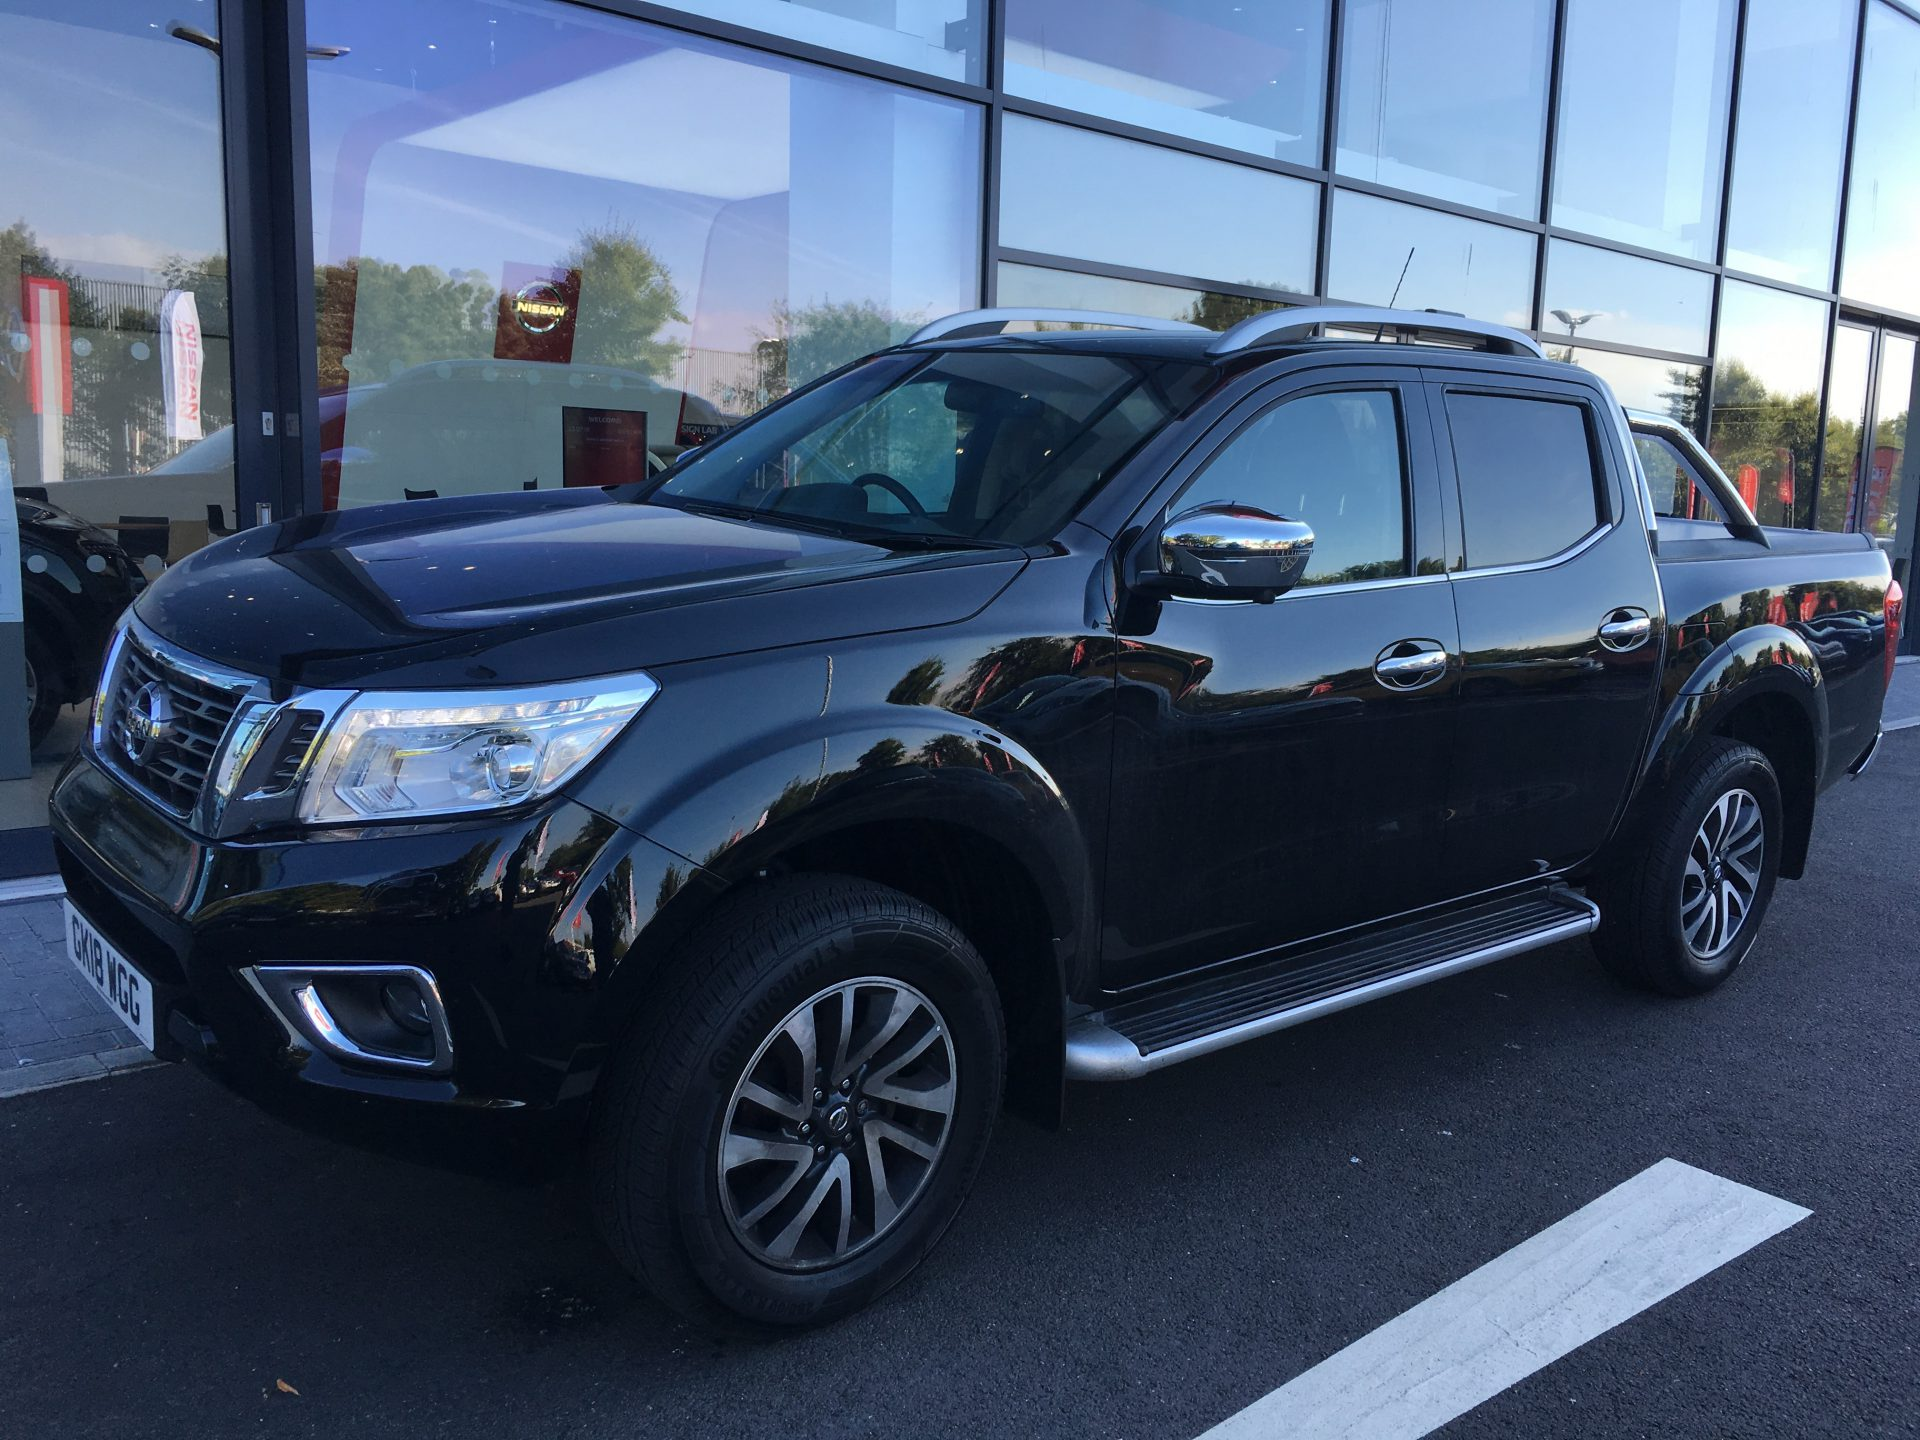 Nissan Navara Demonstrator